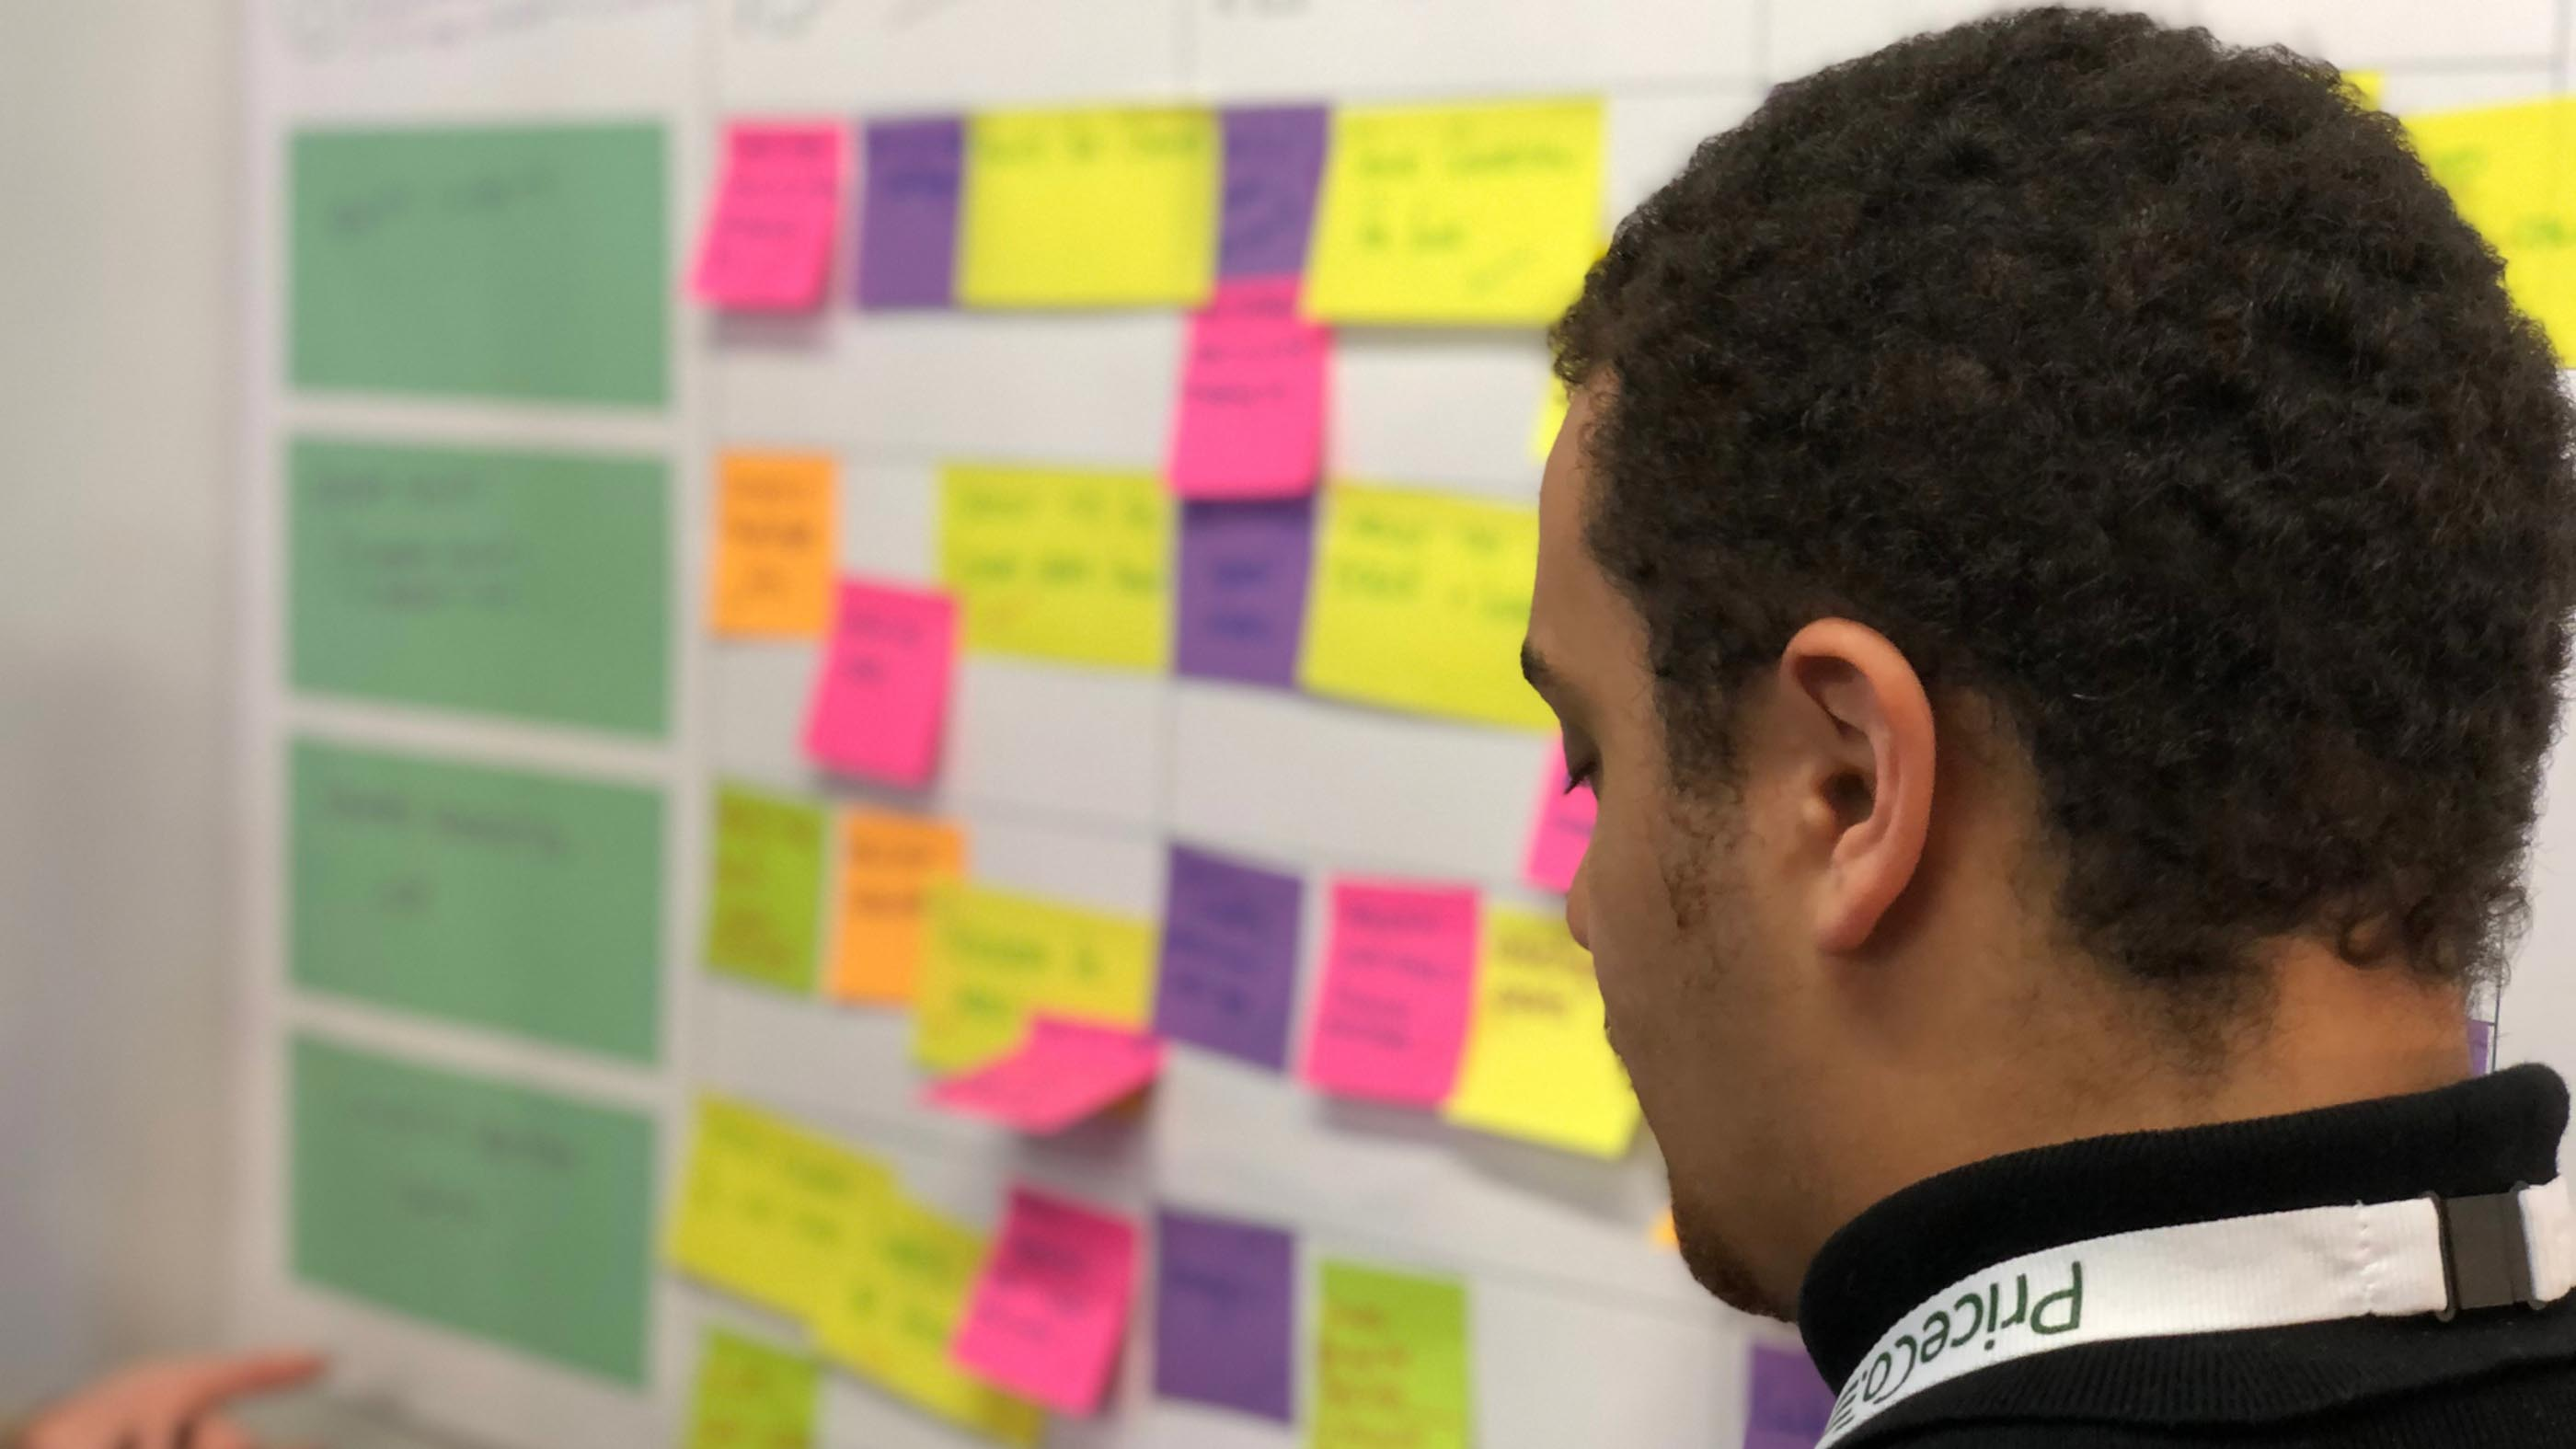 A MadeFor coach looking at Post-it notes